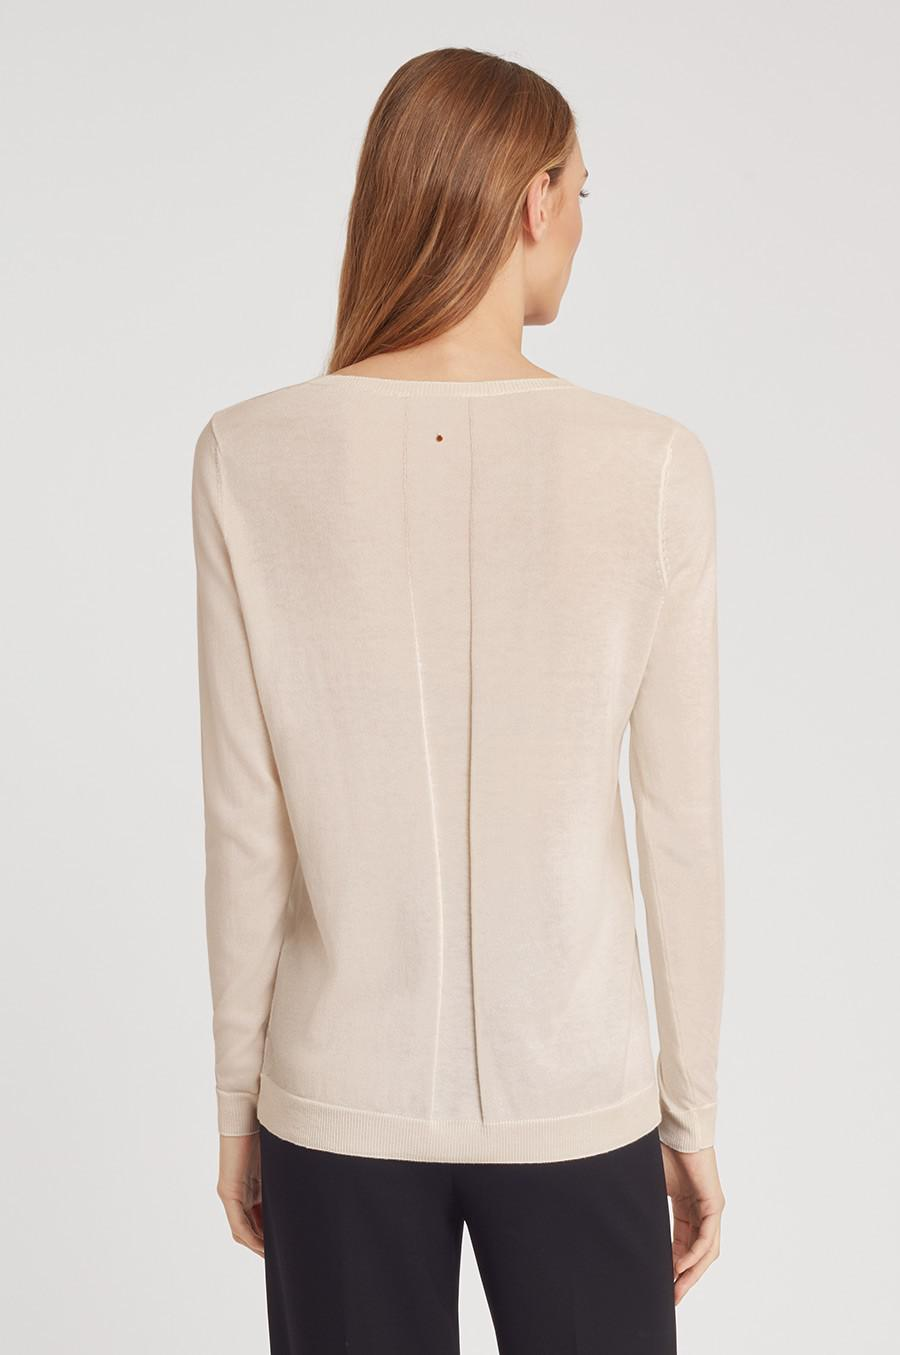 Women's Classic Cotton Cashmere V-Neck Sweater in Sand | Size: 2